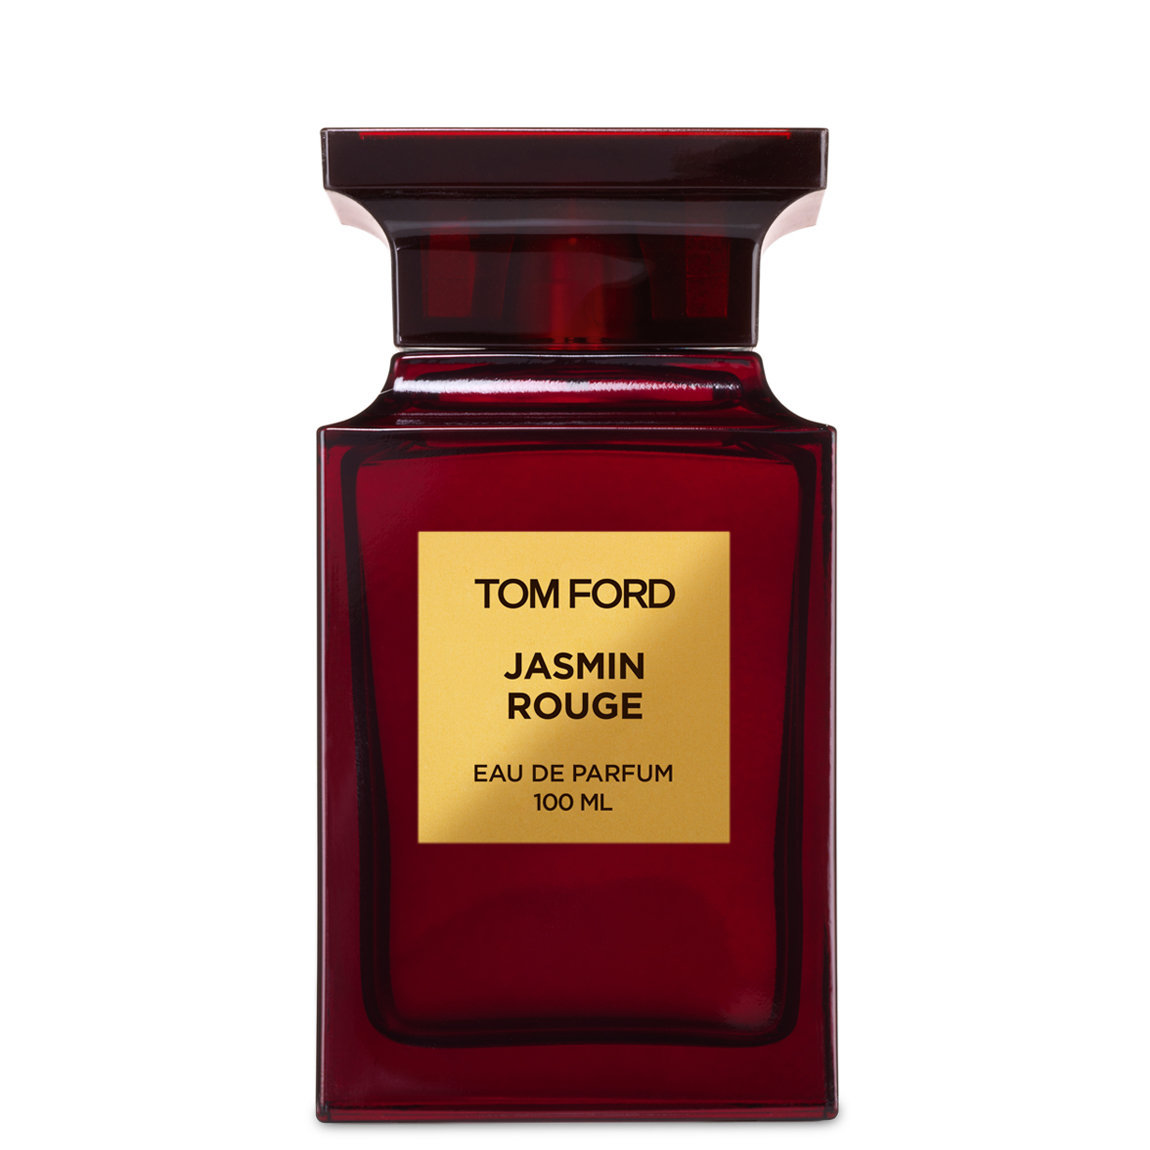 TOM FORD Jasmin Rouge 100 ml alternative view 1 - product swatch.